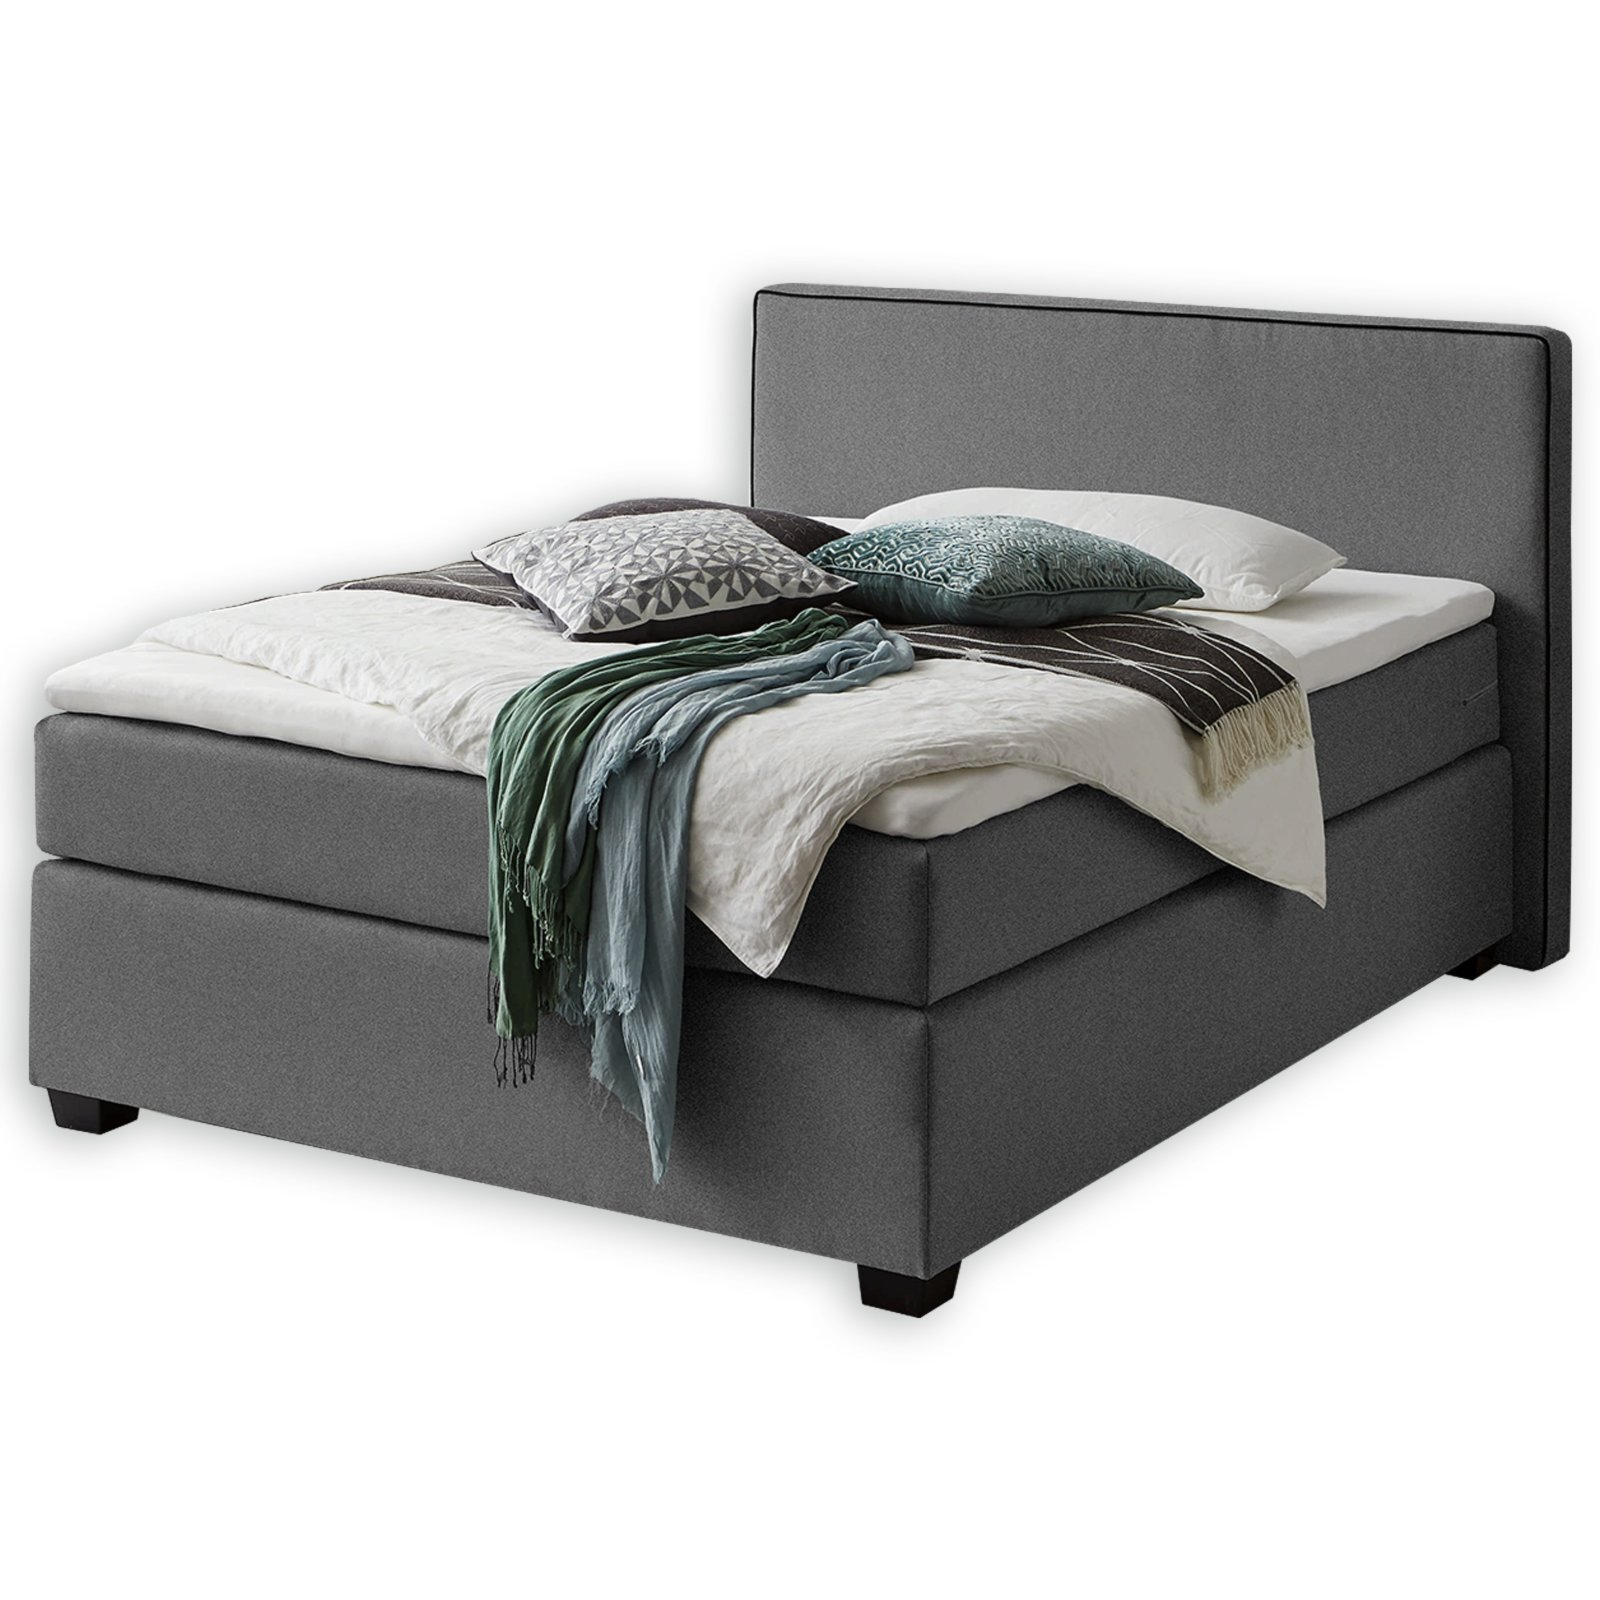 boxspringbett noxa grau h2 140x200 cm online bei. Black Bedroom Furniture Sets. Home Design Ideas